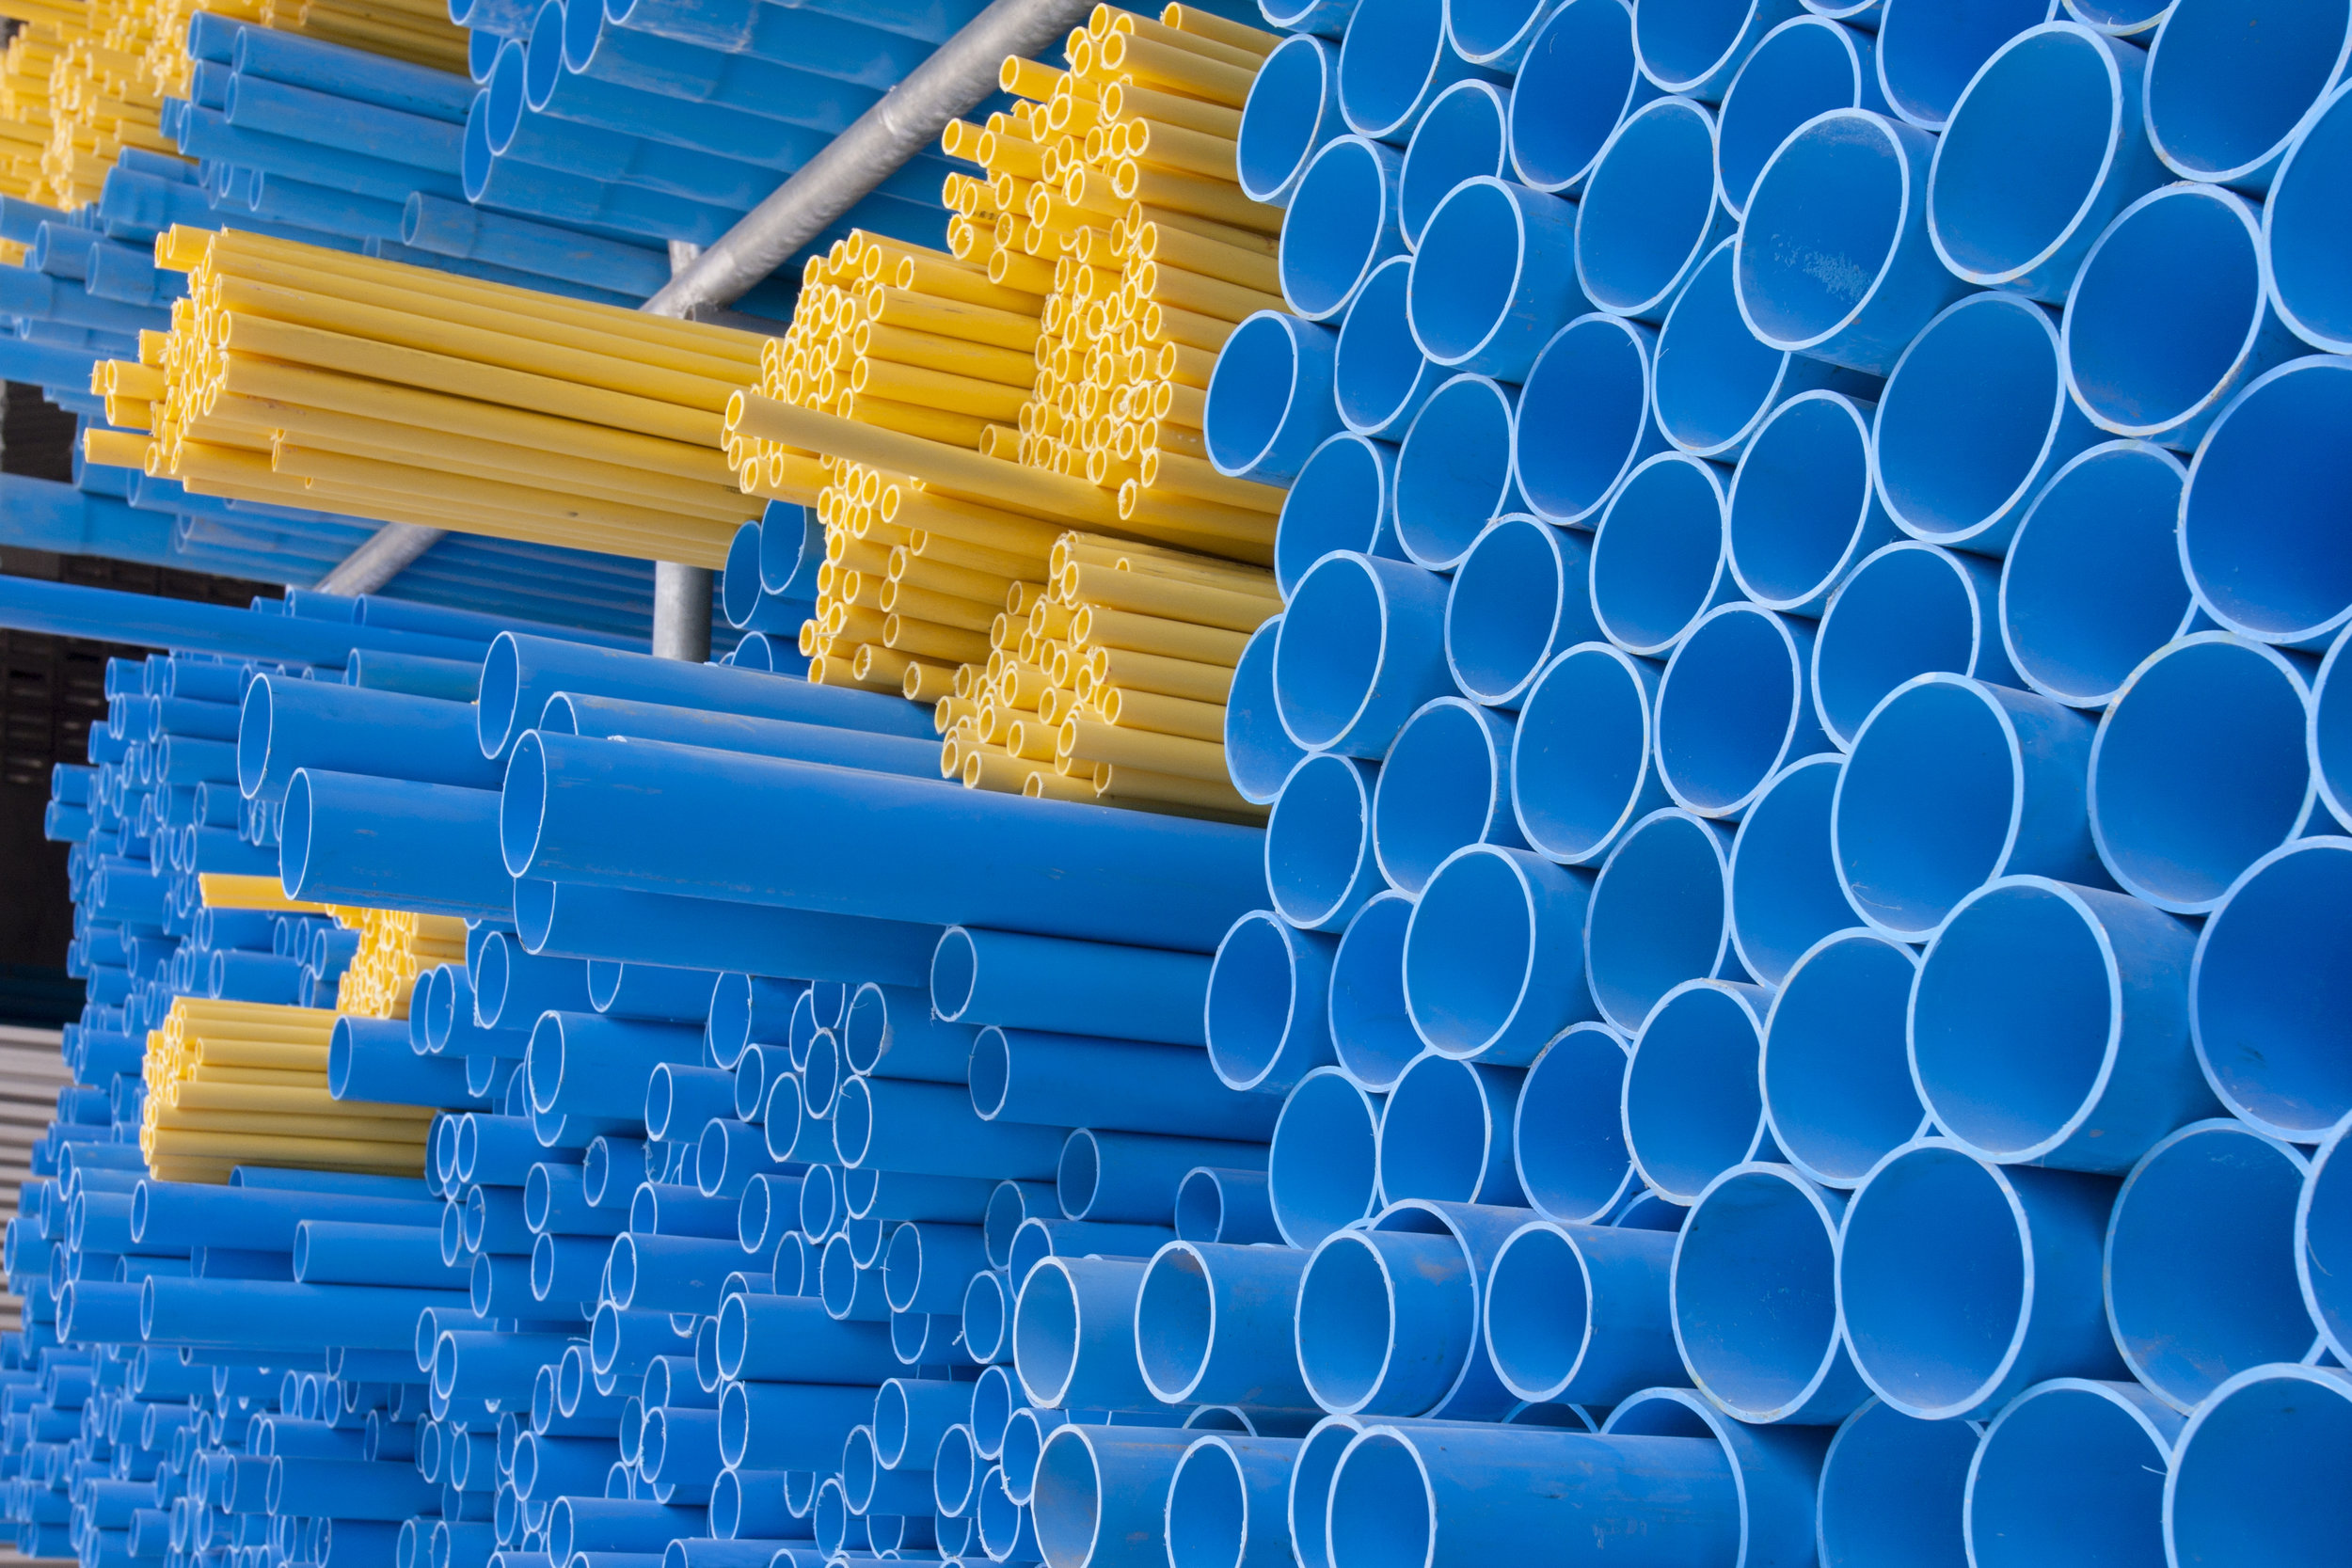 UPVC Pipes and Fittings for drainage and irrigation, transportation and storage, temporary shelter, infrastructure projects, government projects and agriculture